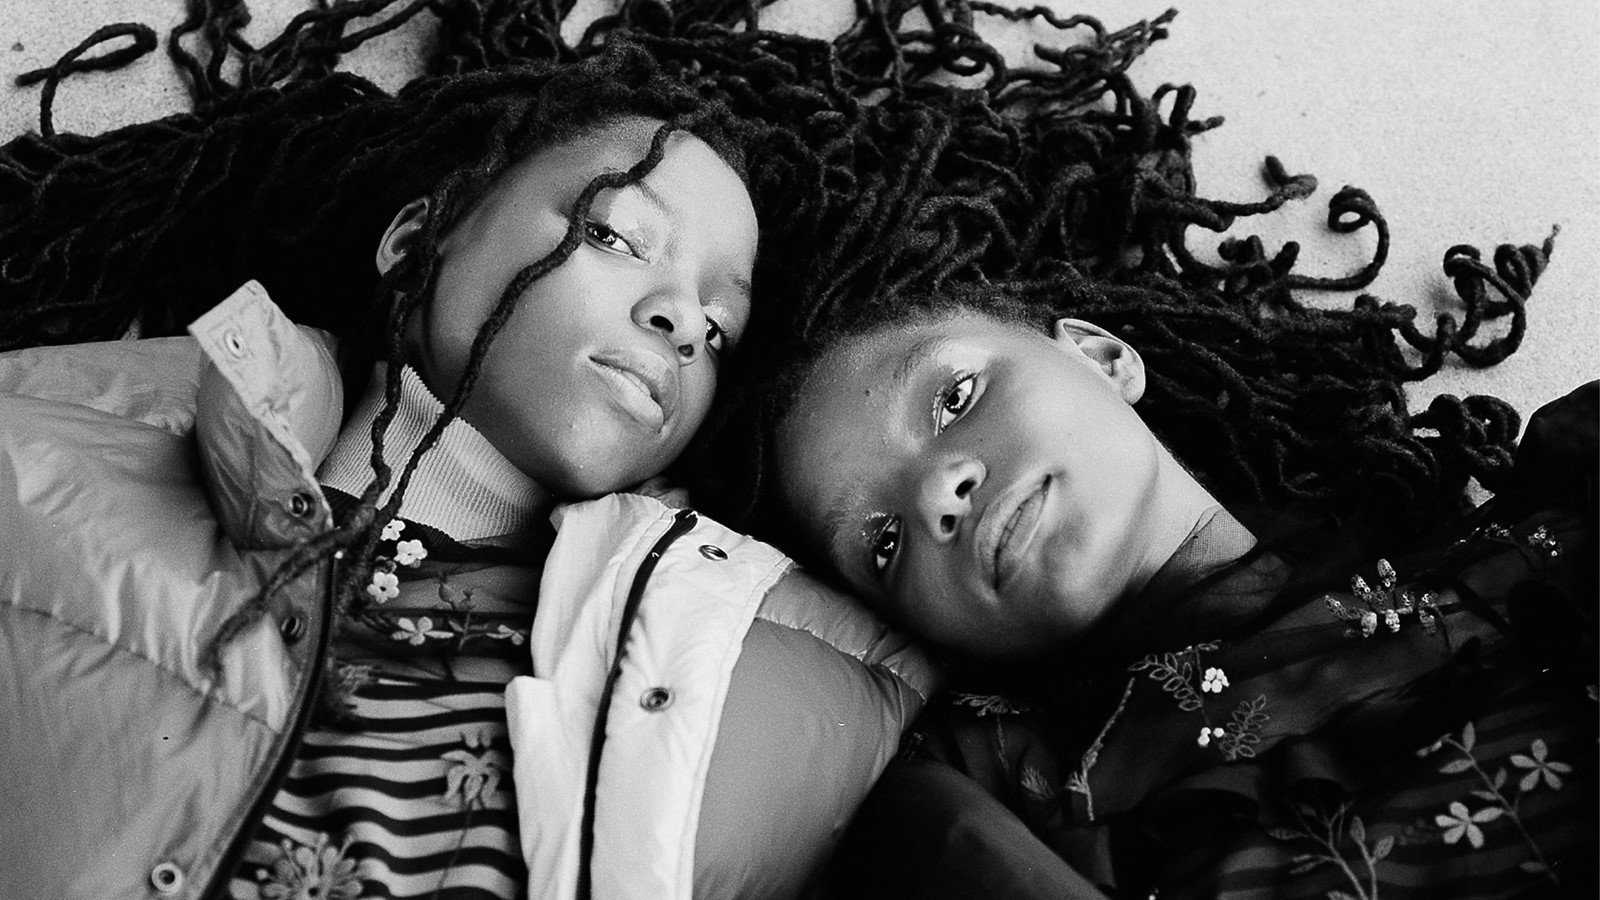 chloe x halle dazed. Black Bedroom Furniture Sets. Home Design Ideas